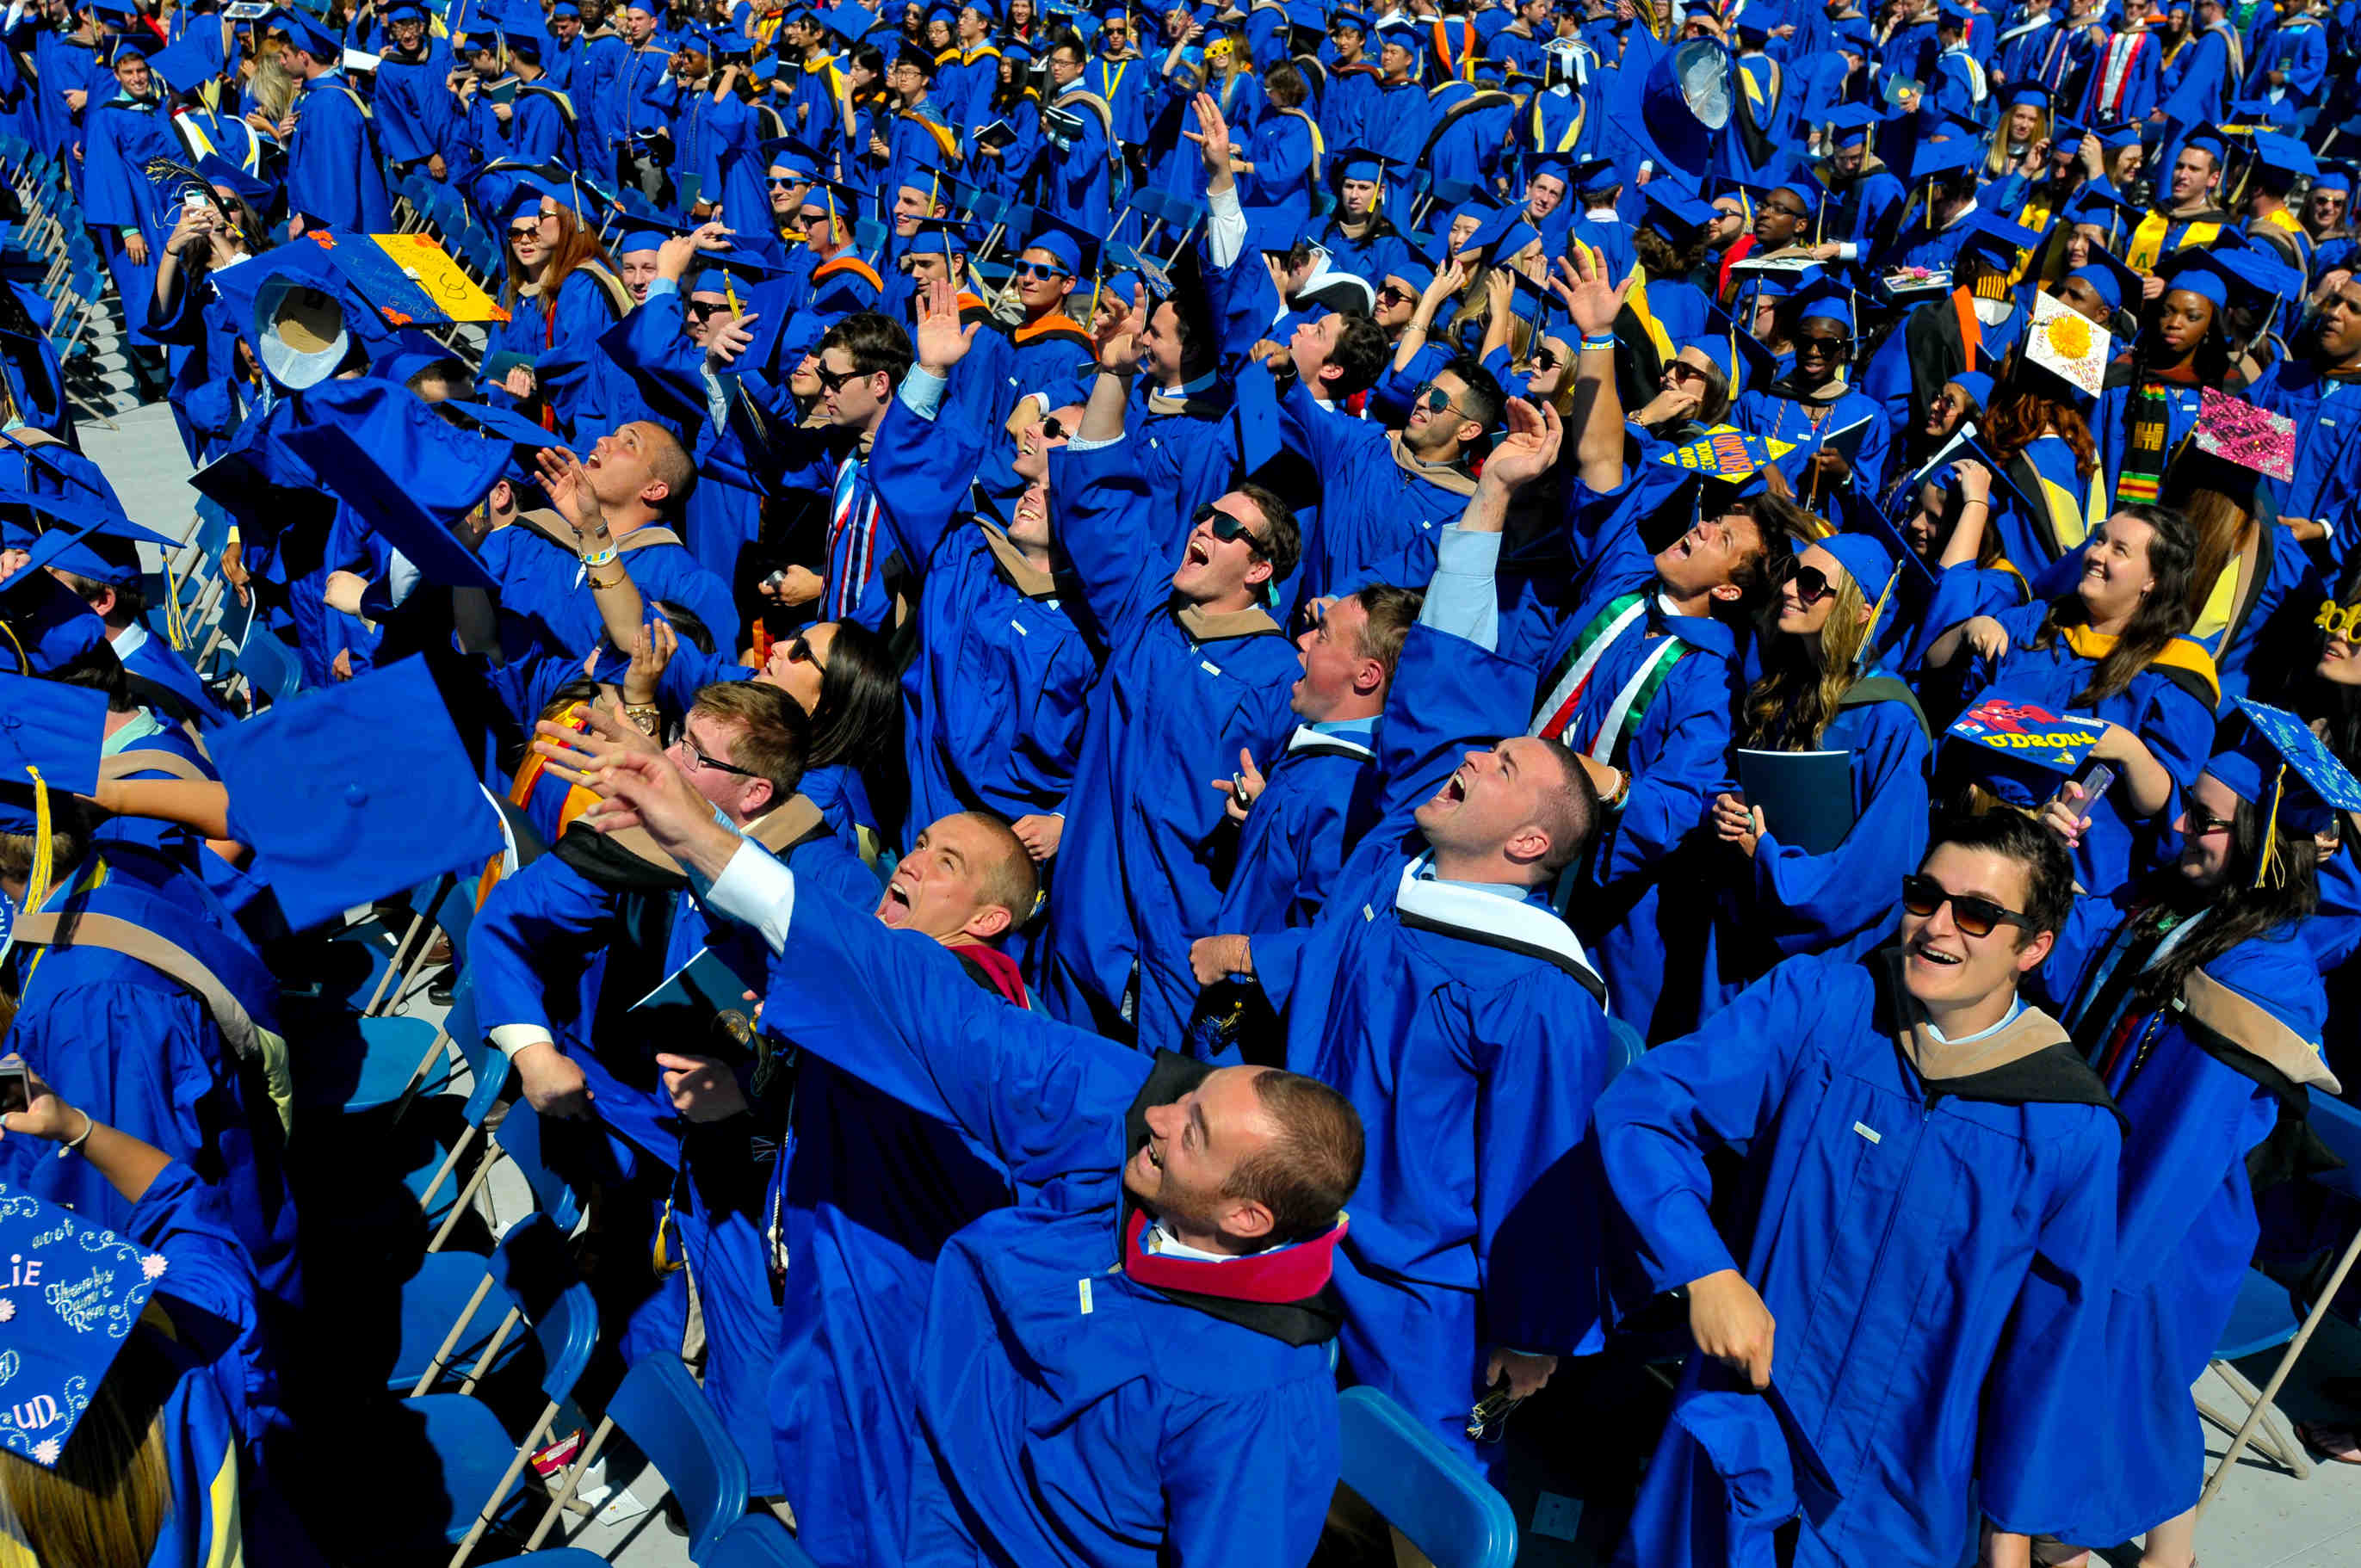 U.S. News college rankings: Where are the best values, top choices for low-income students